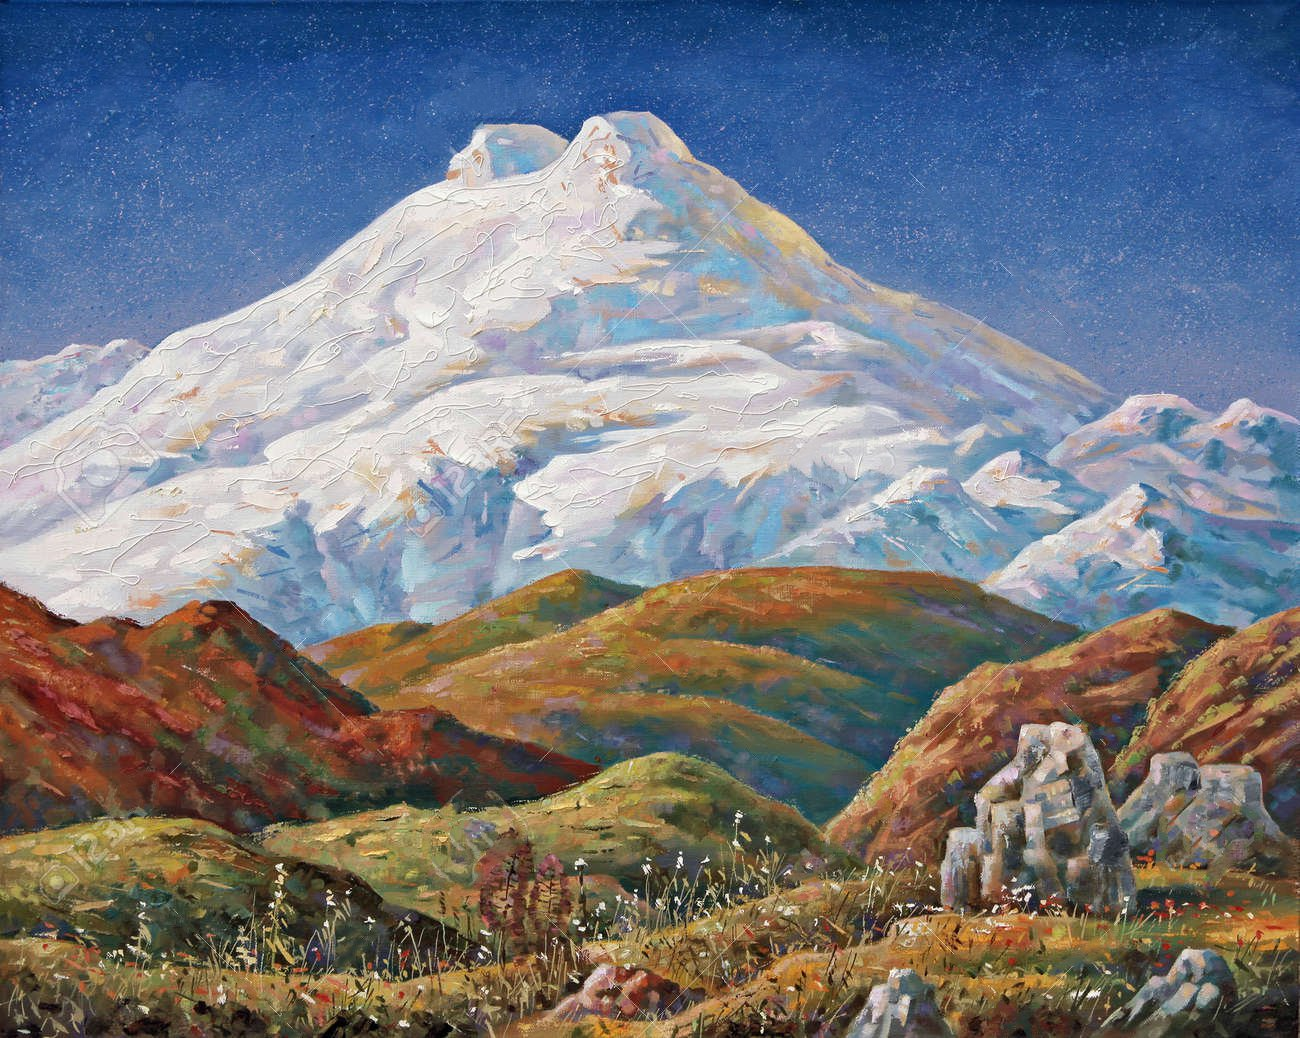 103318507-snow-top-of-mount-elbrus-in-autumn-an-oil-painting-on-canvas.jpg